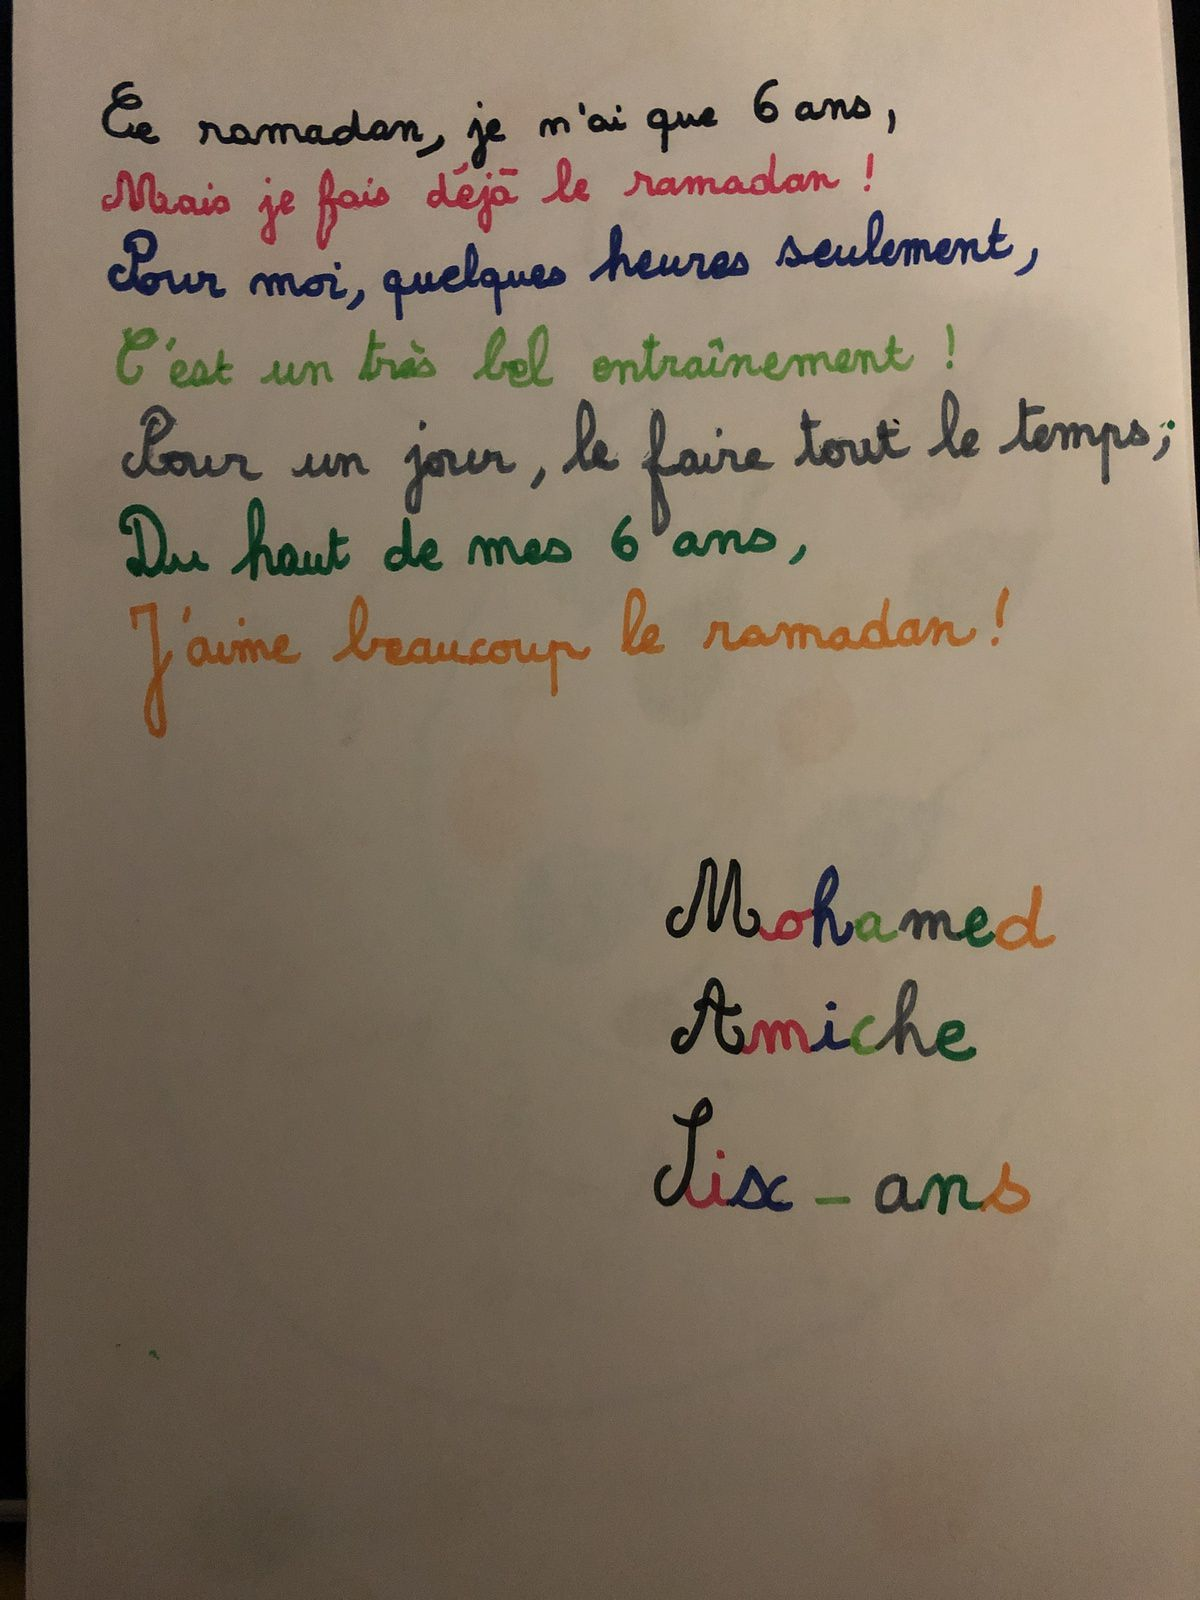 Participation 86 : Mohammed, 6 ans